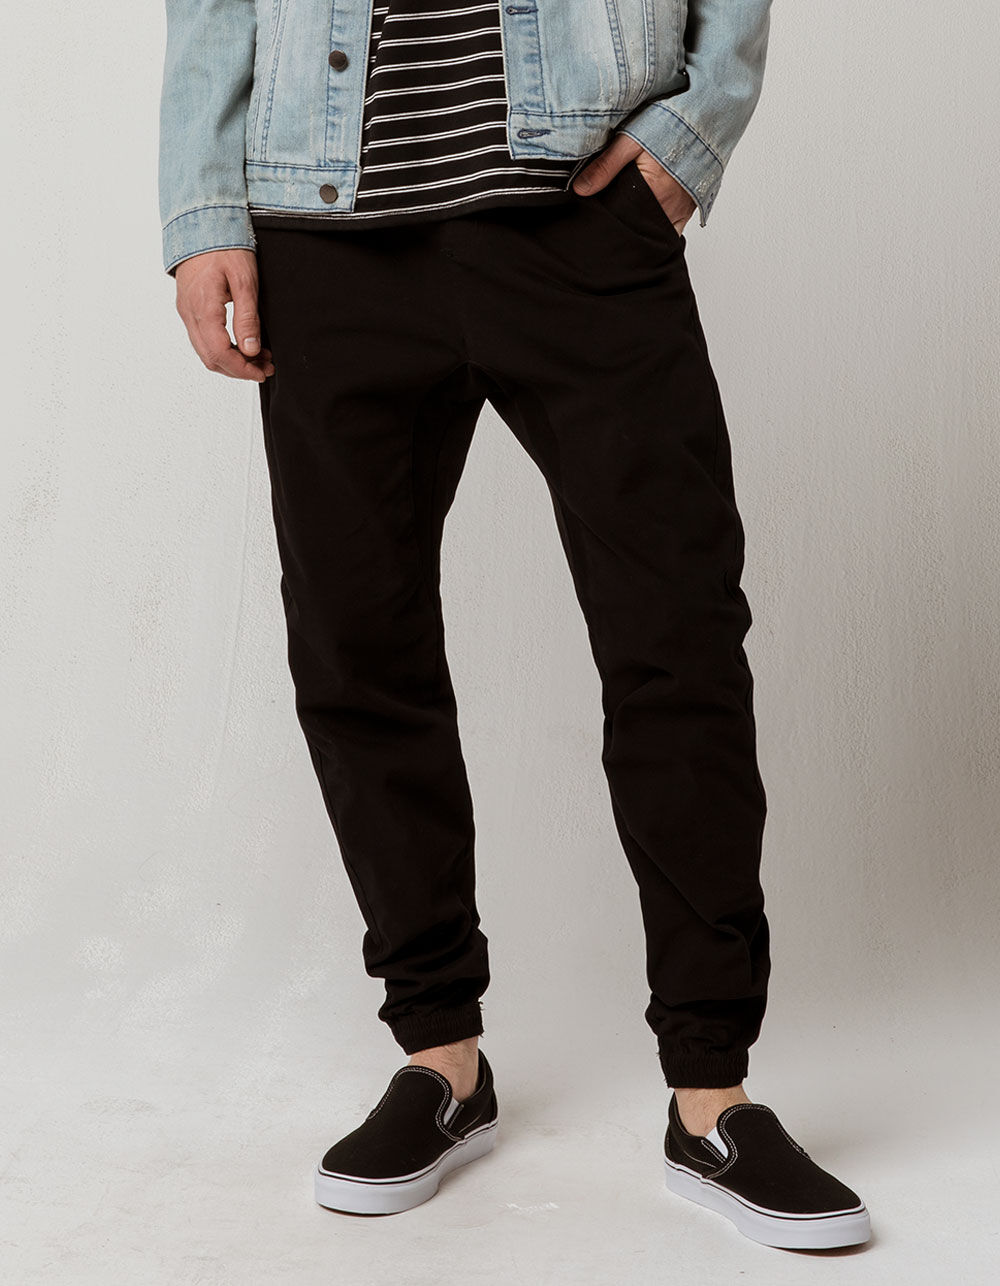 CHARLES AND A HALF Black Twill Jogger Pants